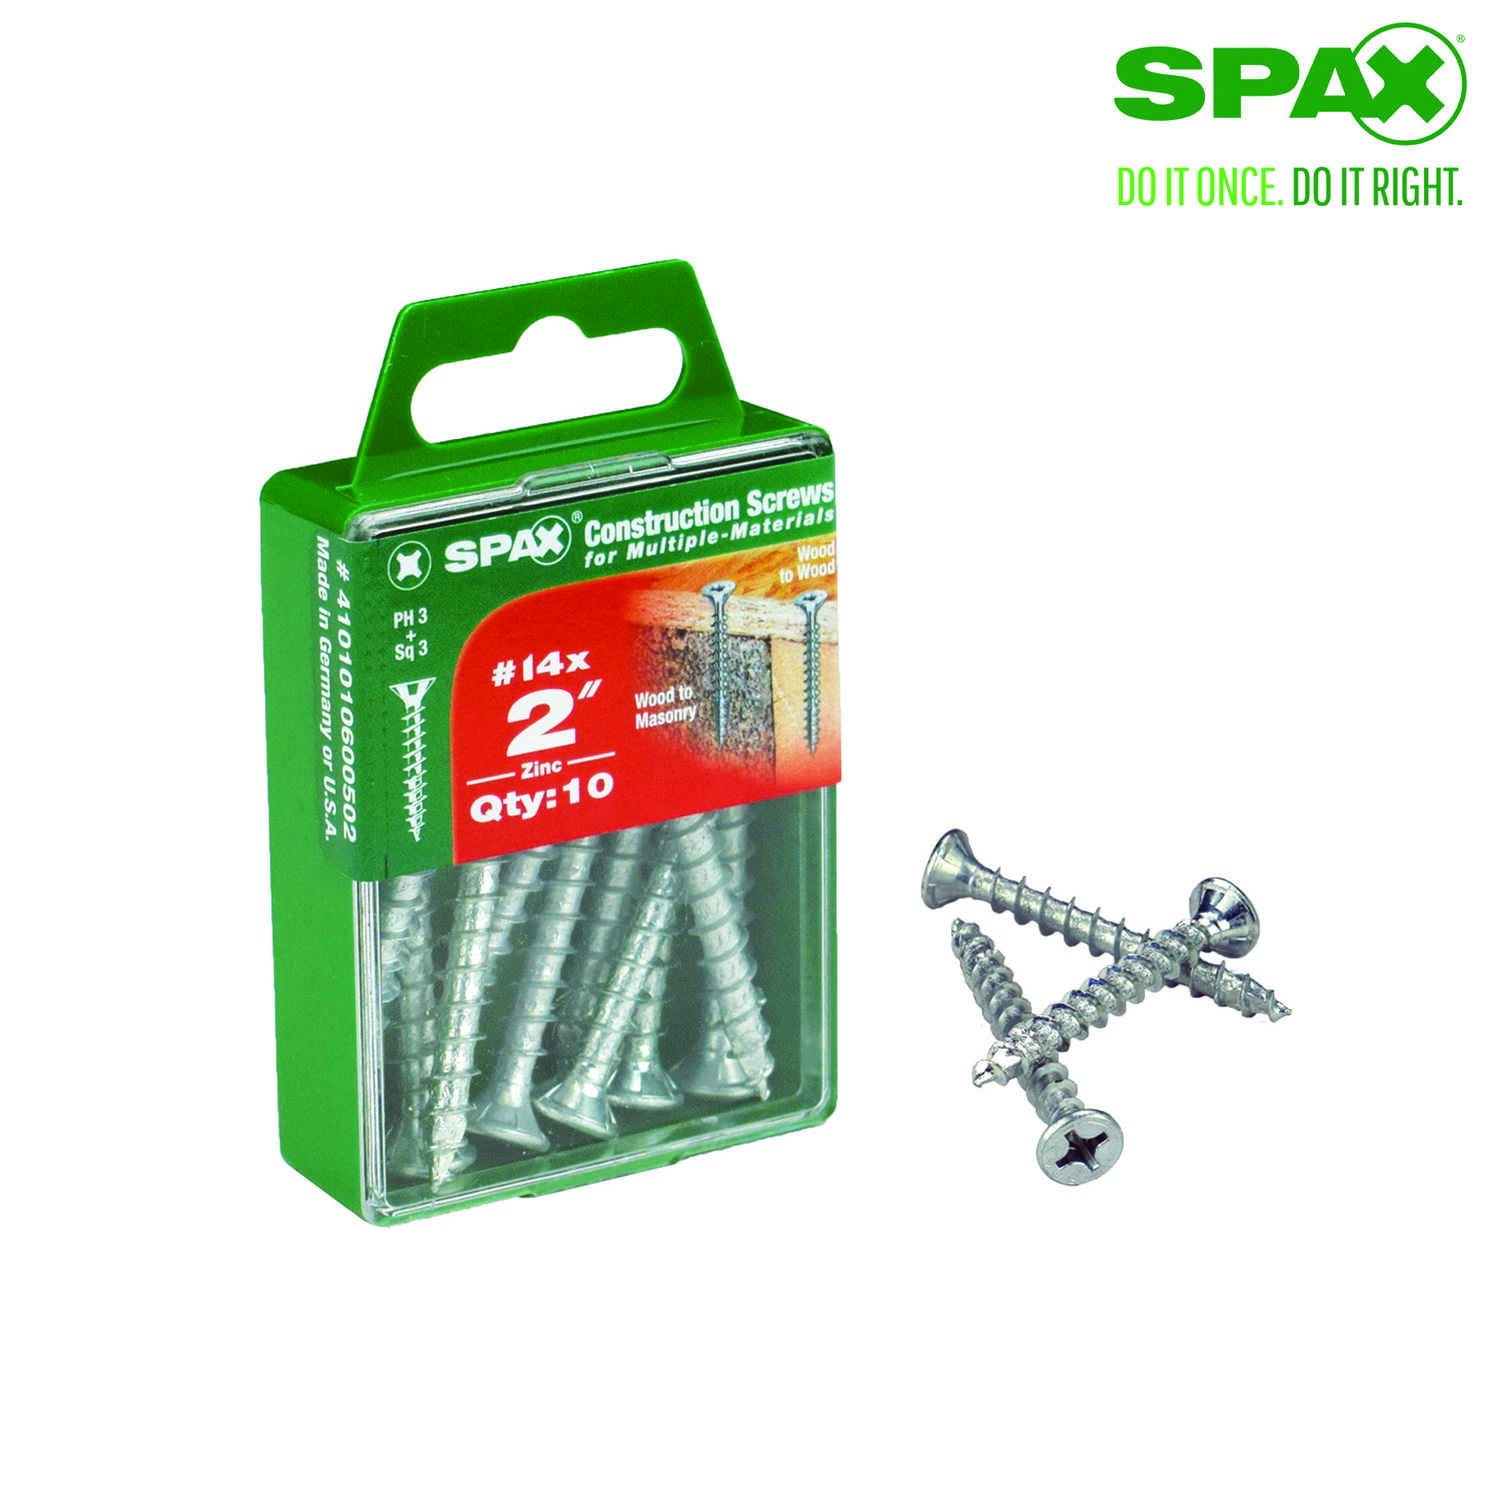 SPAX  No. 14   x 2 in. L Phillips/Square  Flat Head Zinc-Plated  Steel  Multi-Purpose Screw  10 each